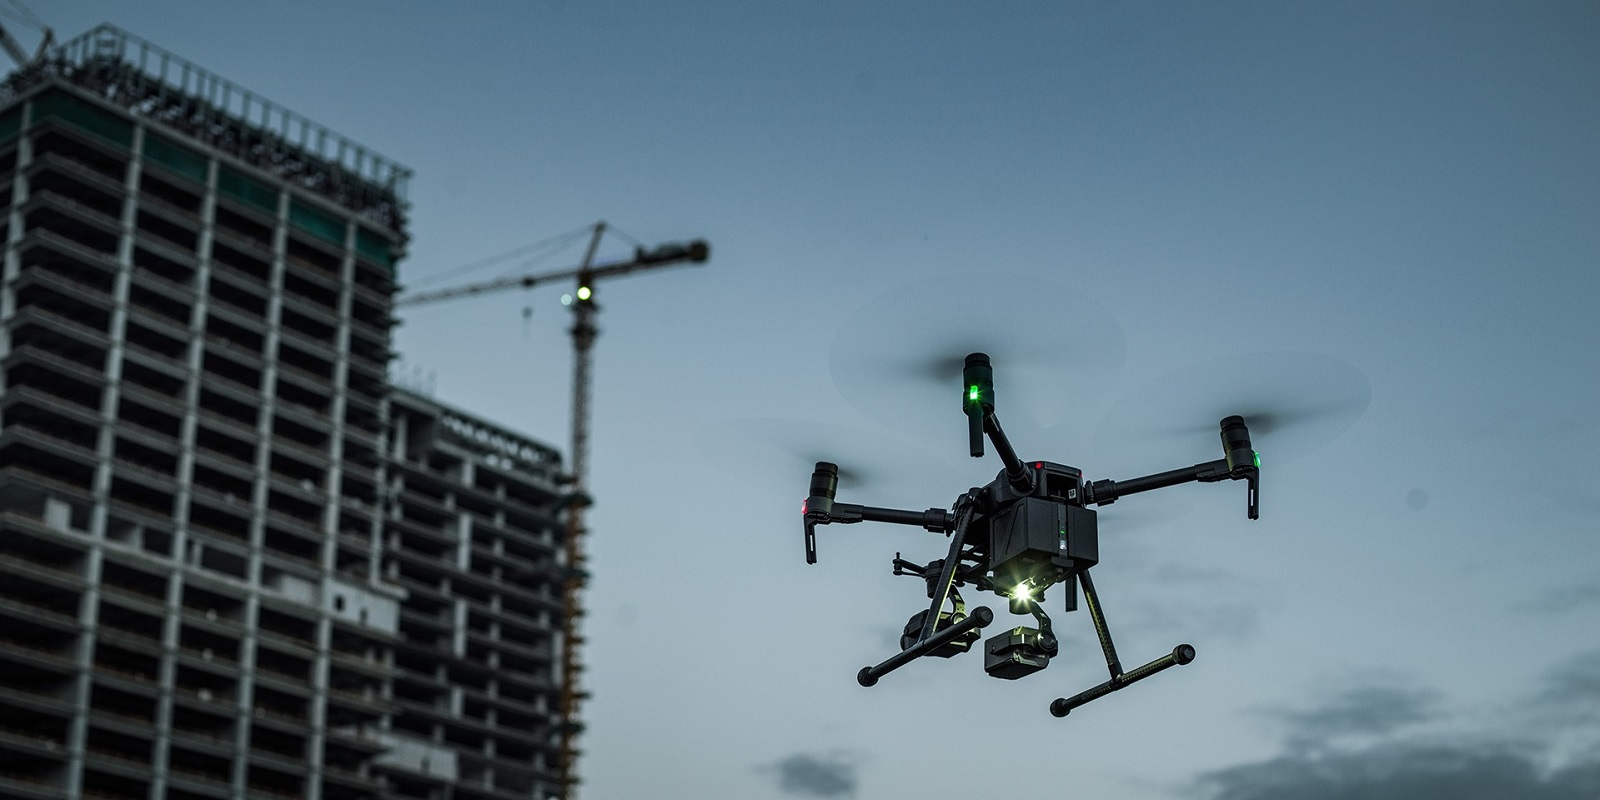 Drone flying near a building under construction